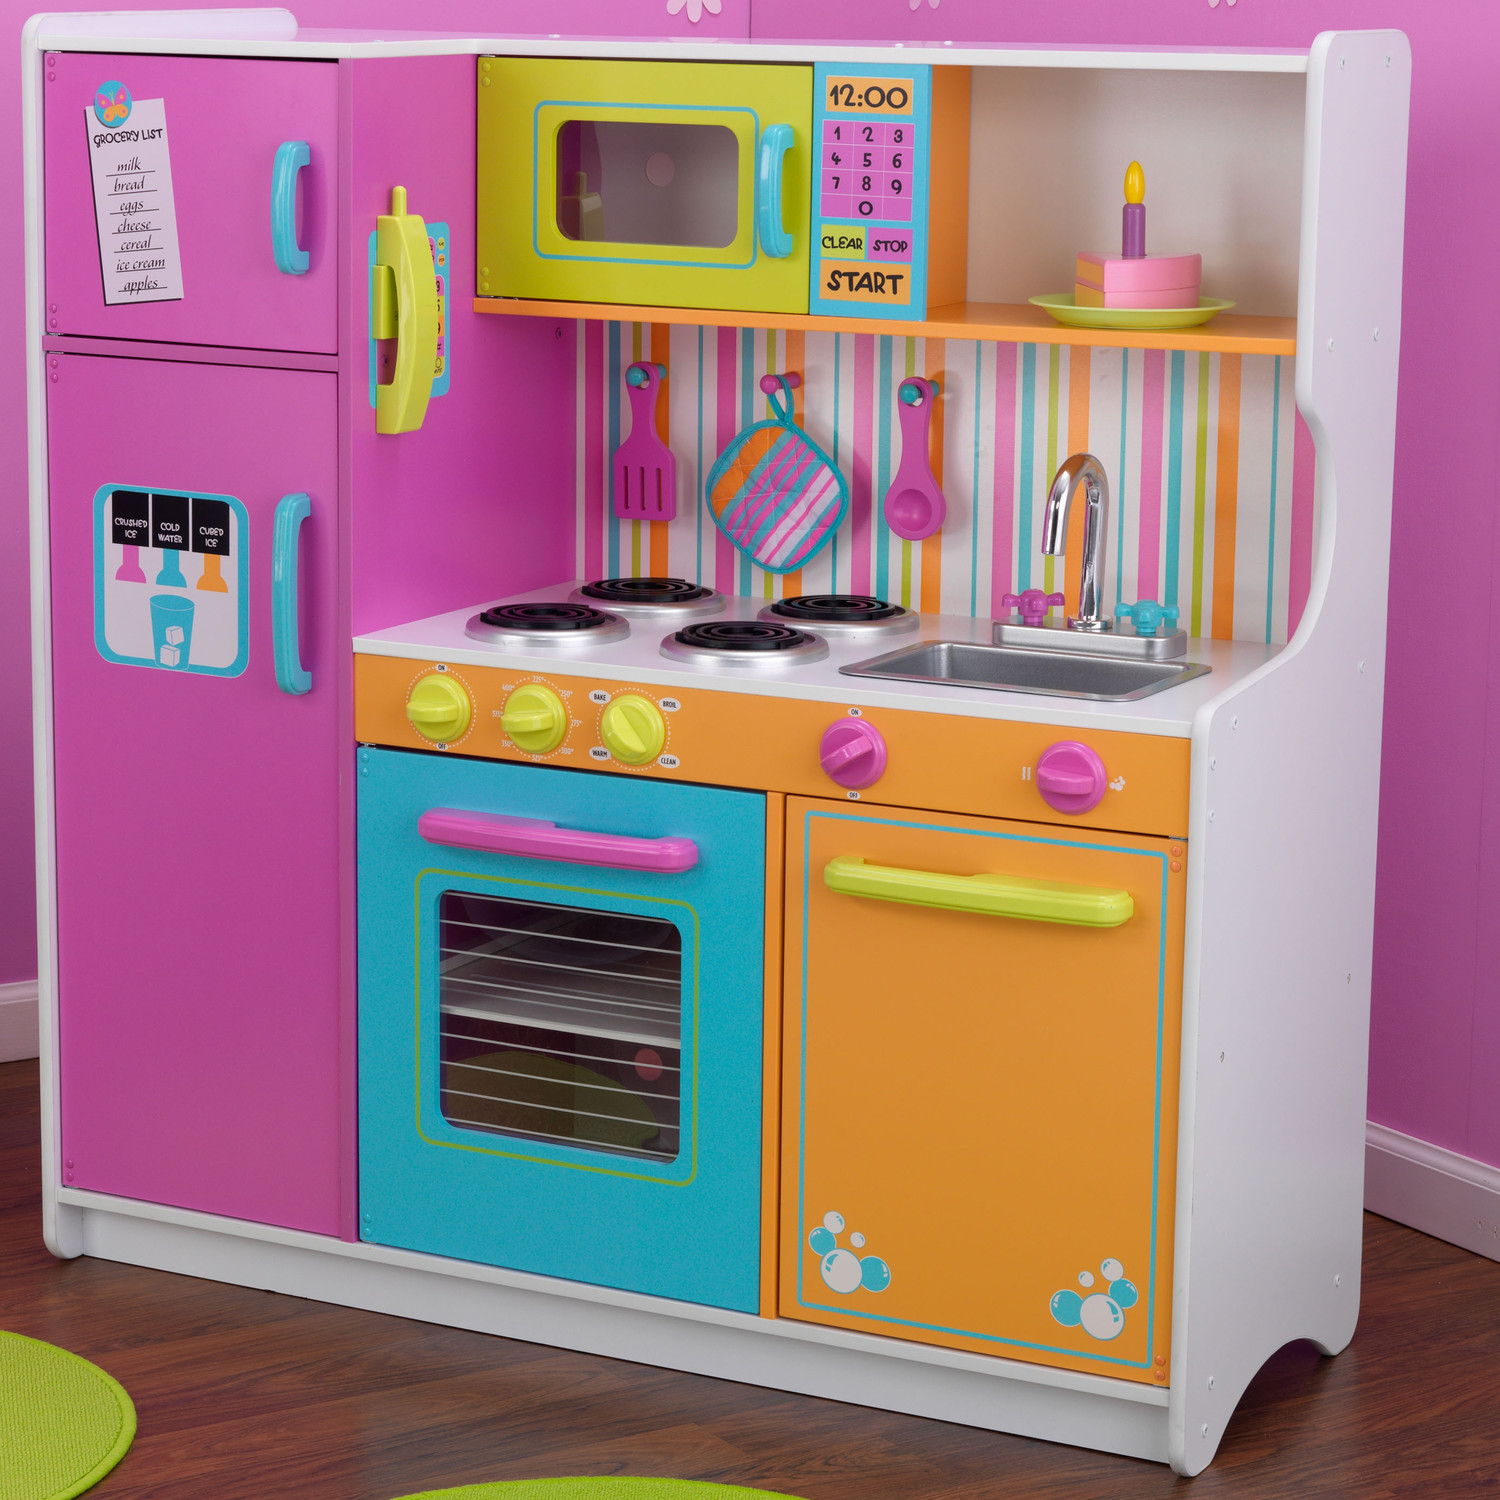 Indigo canada toy sale save 59 off kidkraft deluxe for Kitchen kitchen set